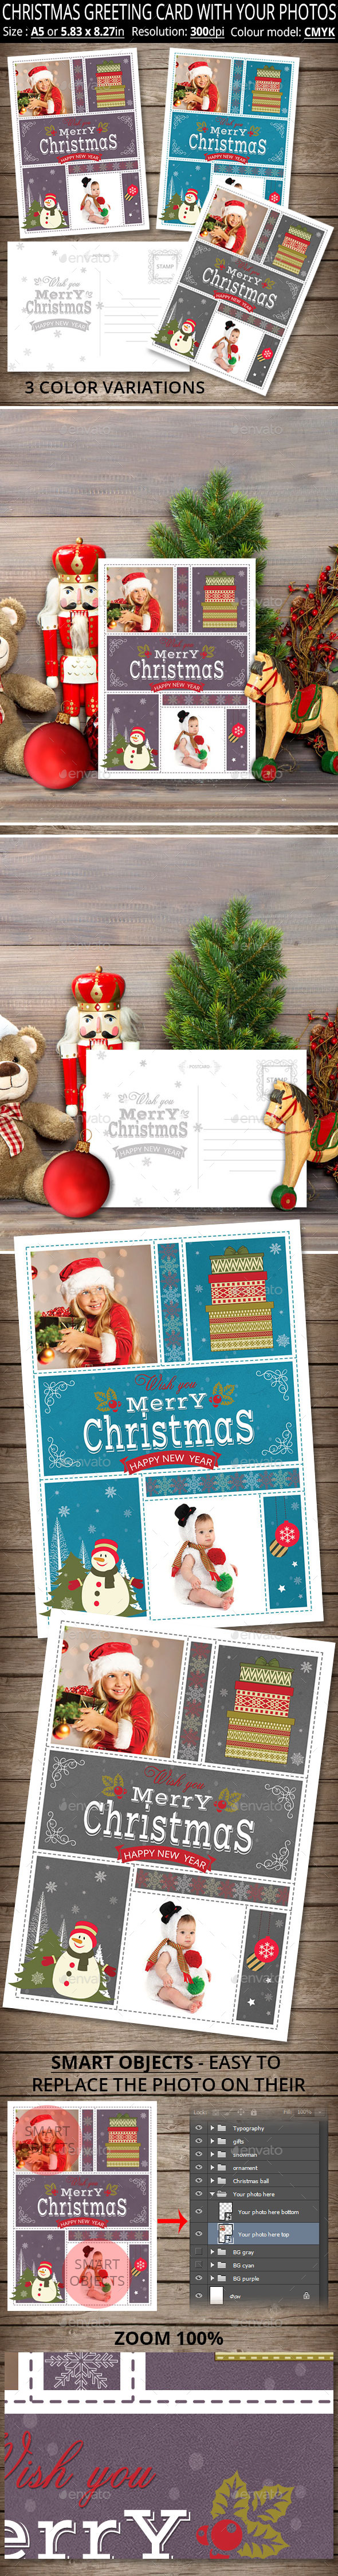 Christmas Greeting Card With Your Photos - Holiday Greeting Cards